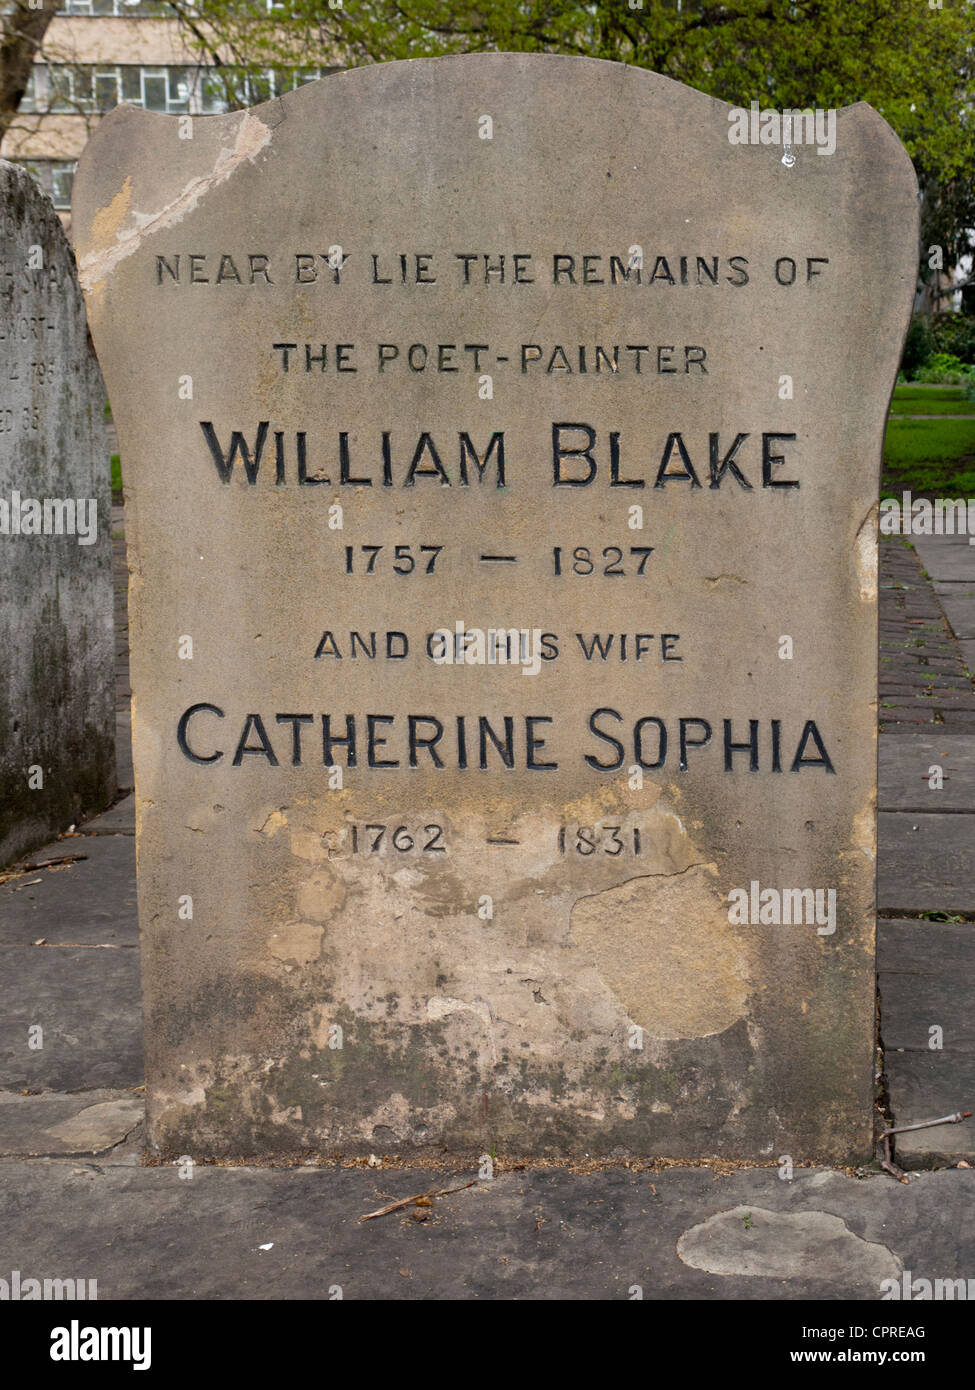 The grave of the English poet, painter and printer William Blake. - Stock Image